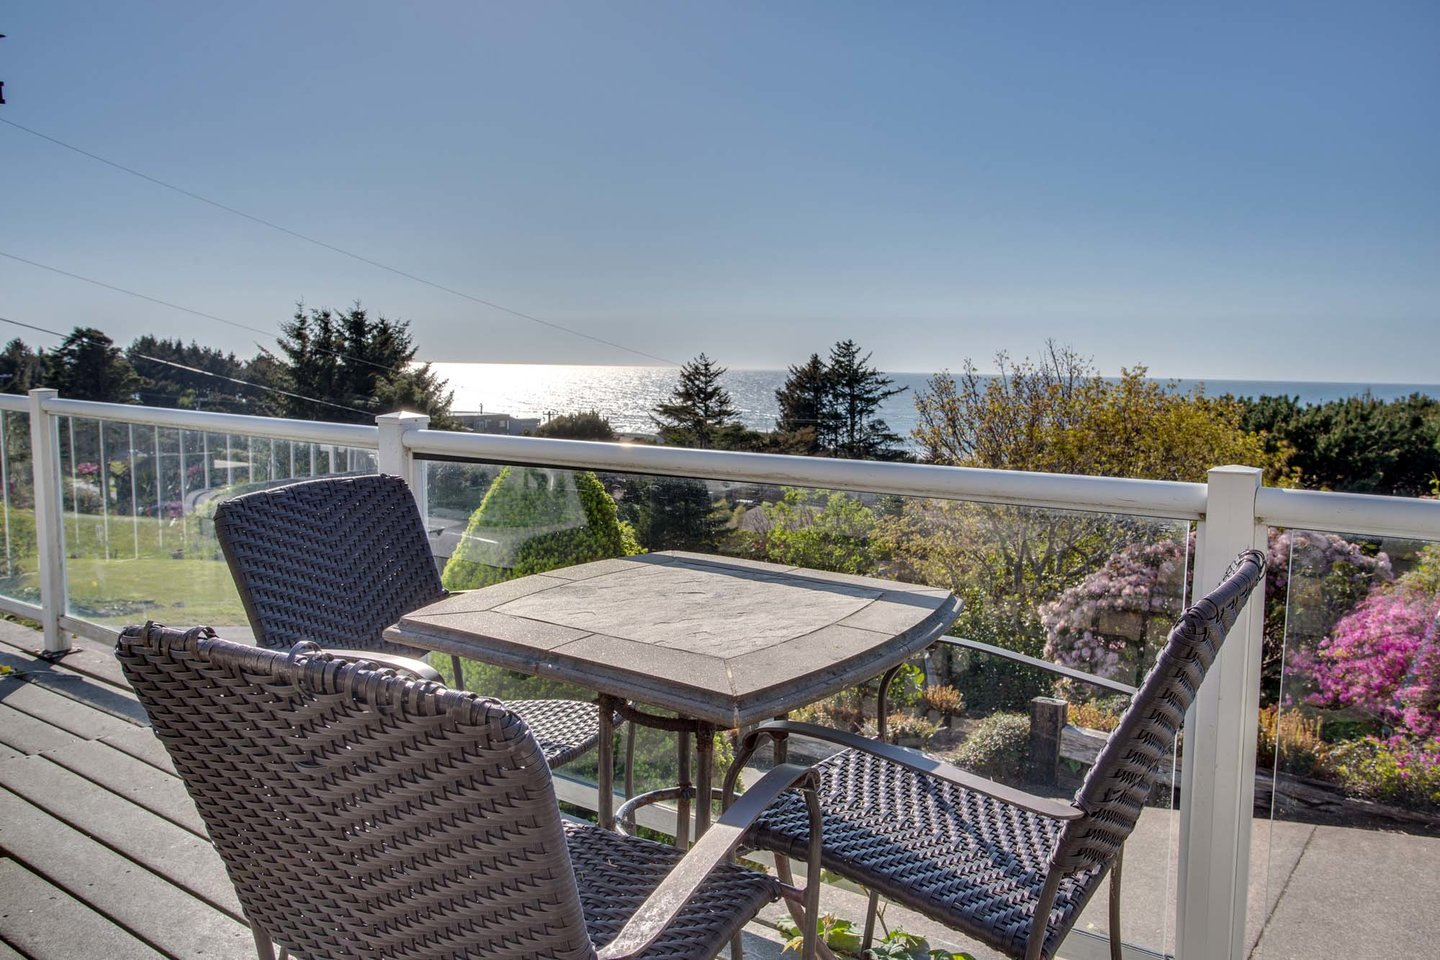 The ocean view is outstanding from every level on the deck.